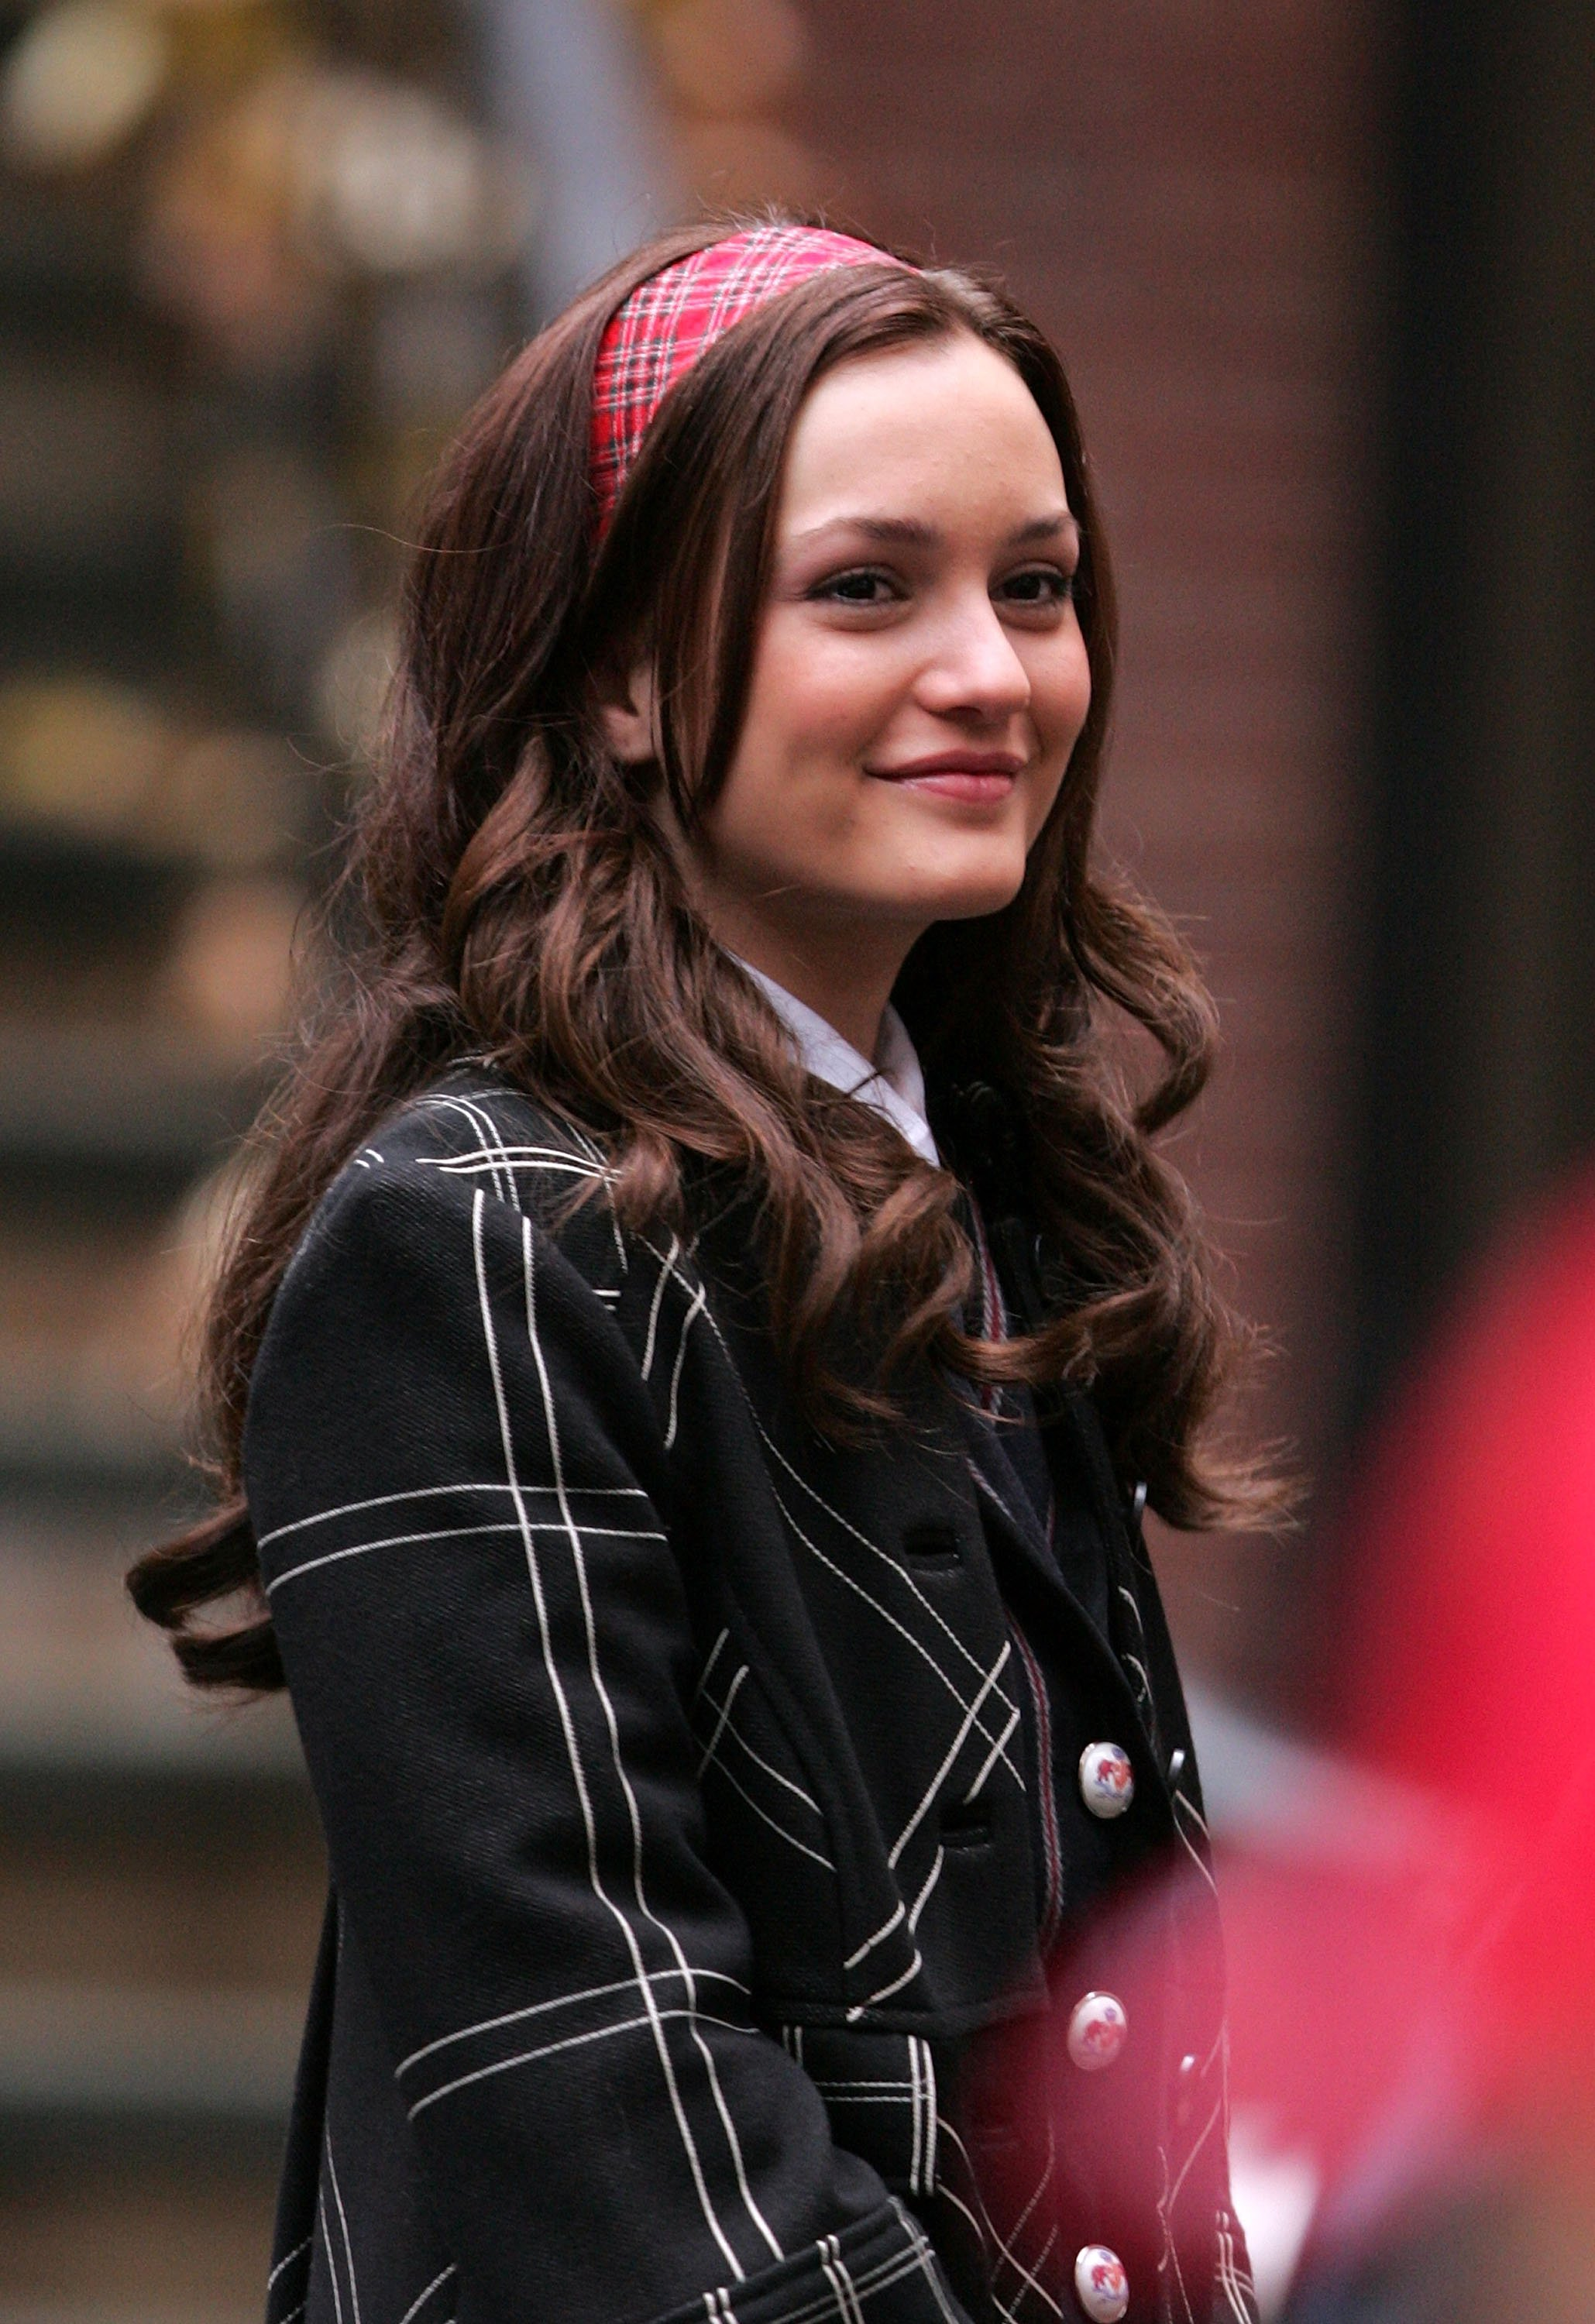 """Leighton Meester on location for """"Gossip Girl"""" on November 26, 2007 in New York City 